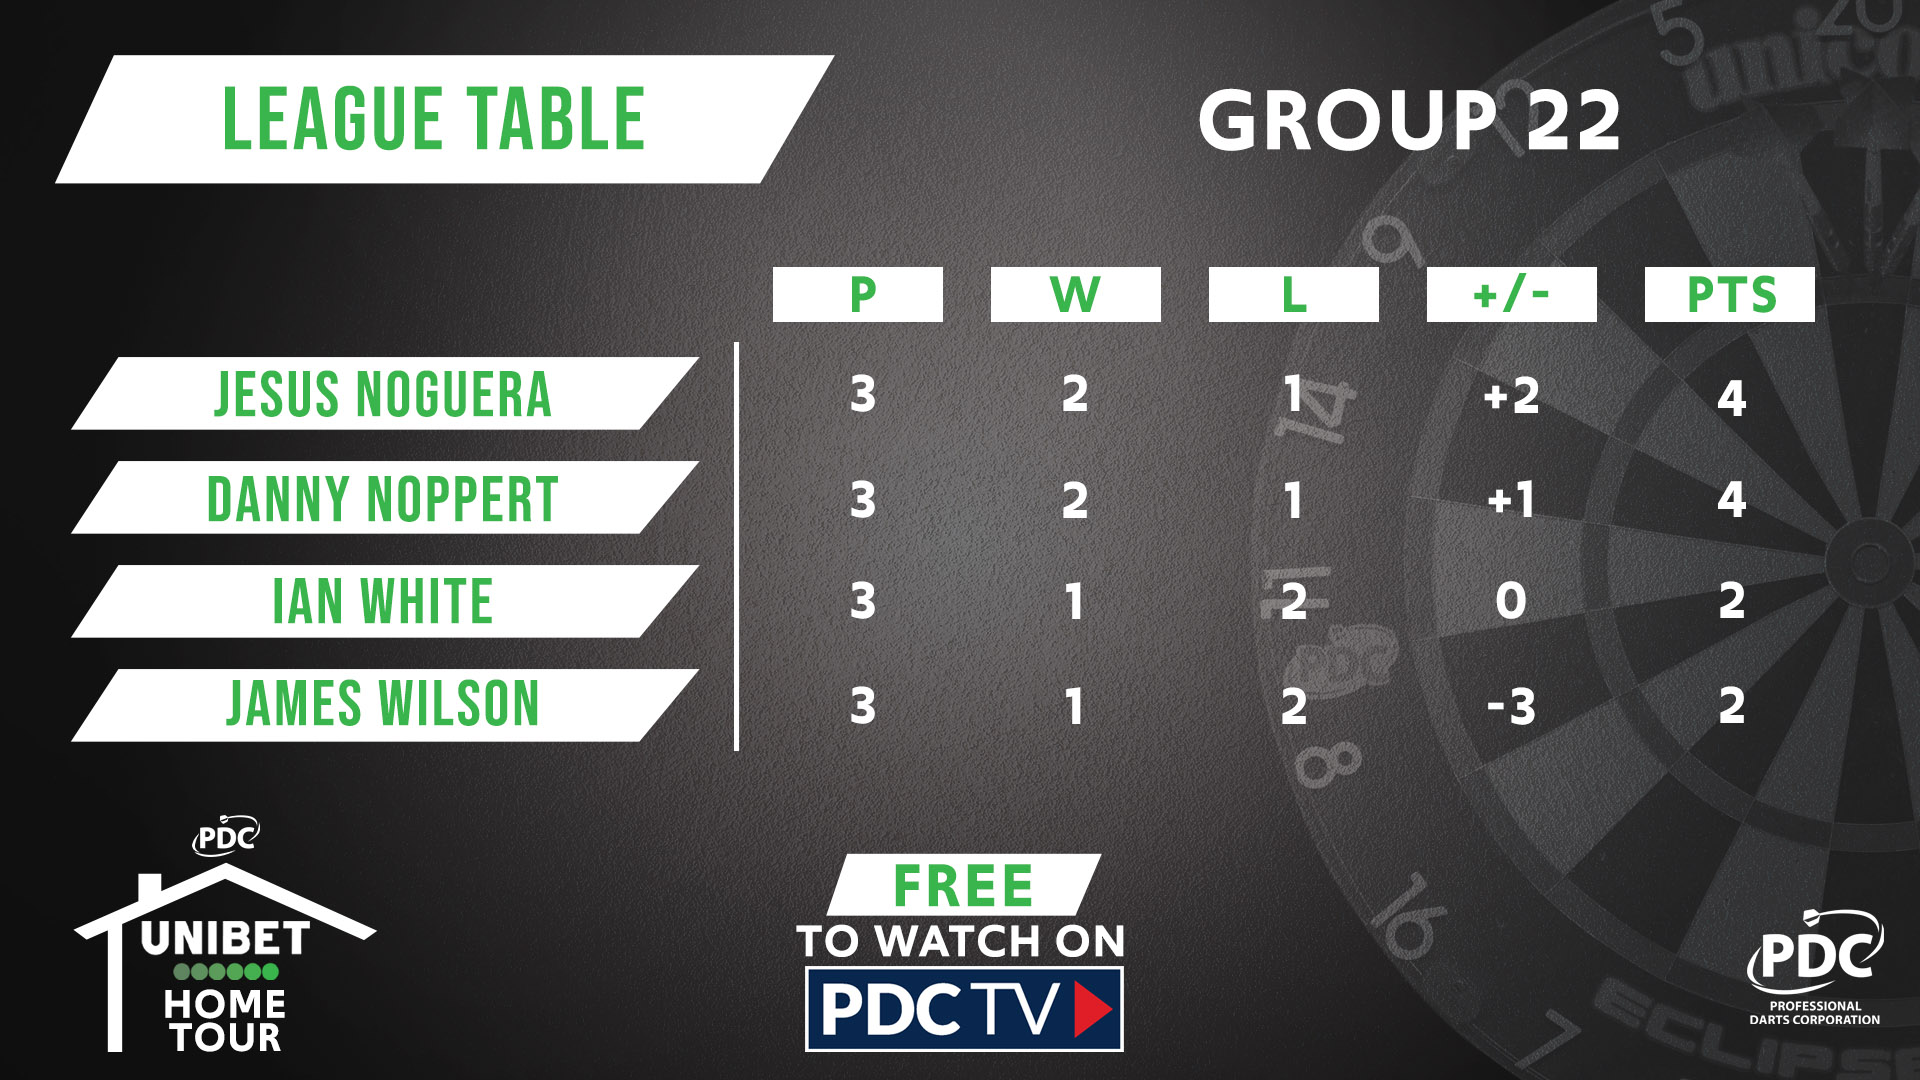 Group 22 table